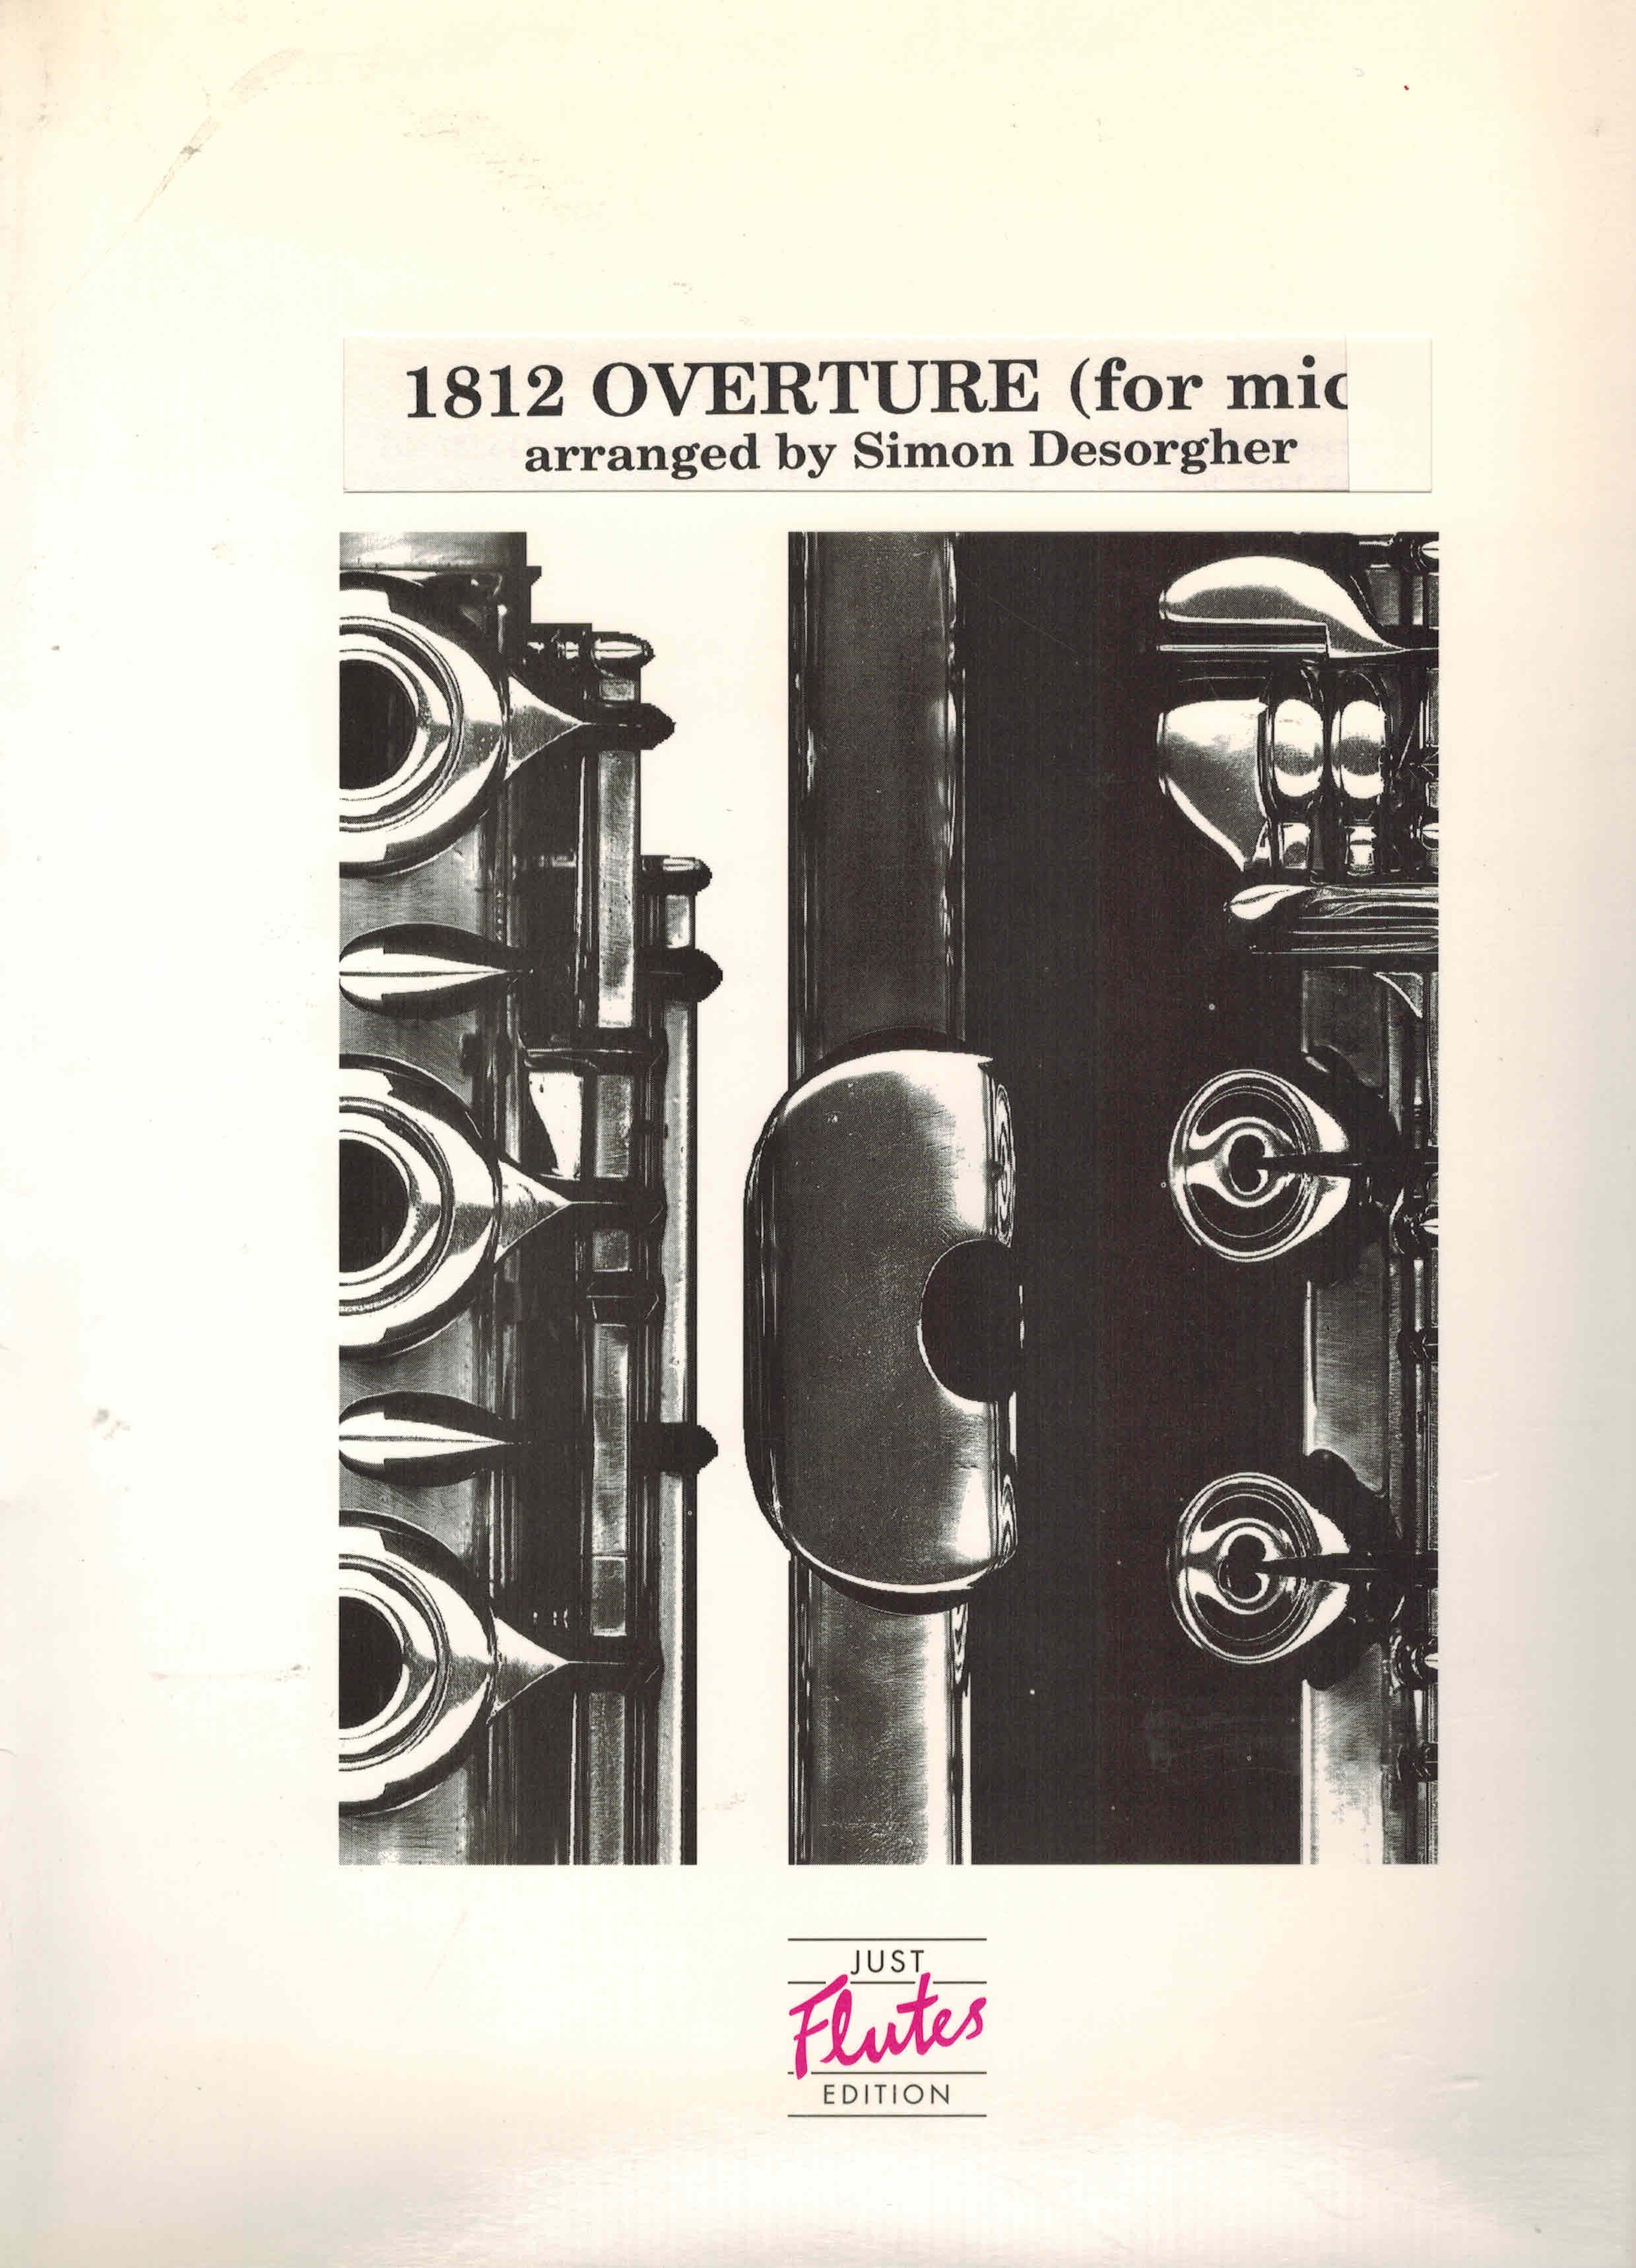 1812 Overture for Mice | Just Flutes Edition